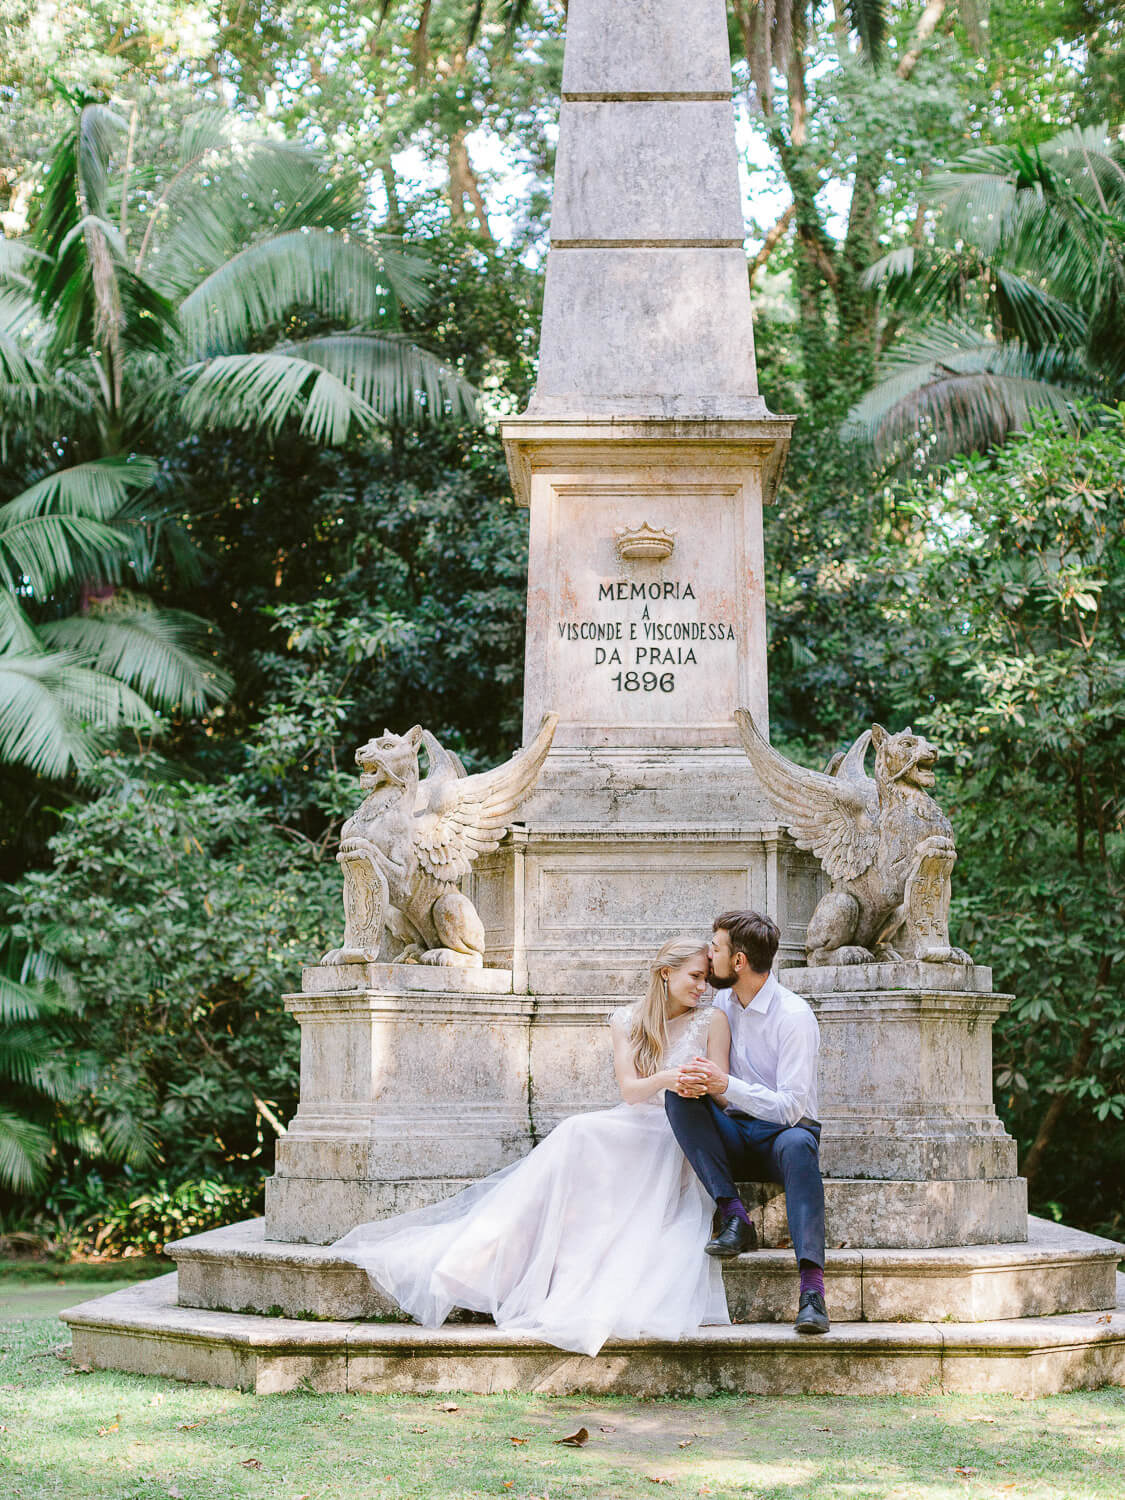 Wedding couple posing over monument in a park in Azores on their wedding day by Portugal Wedding Photographer